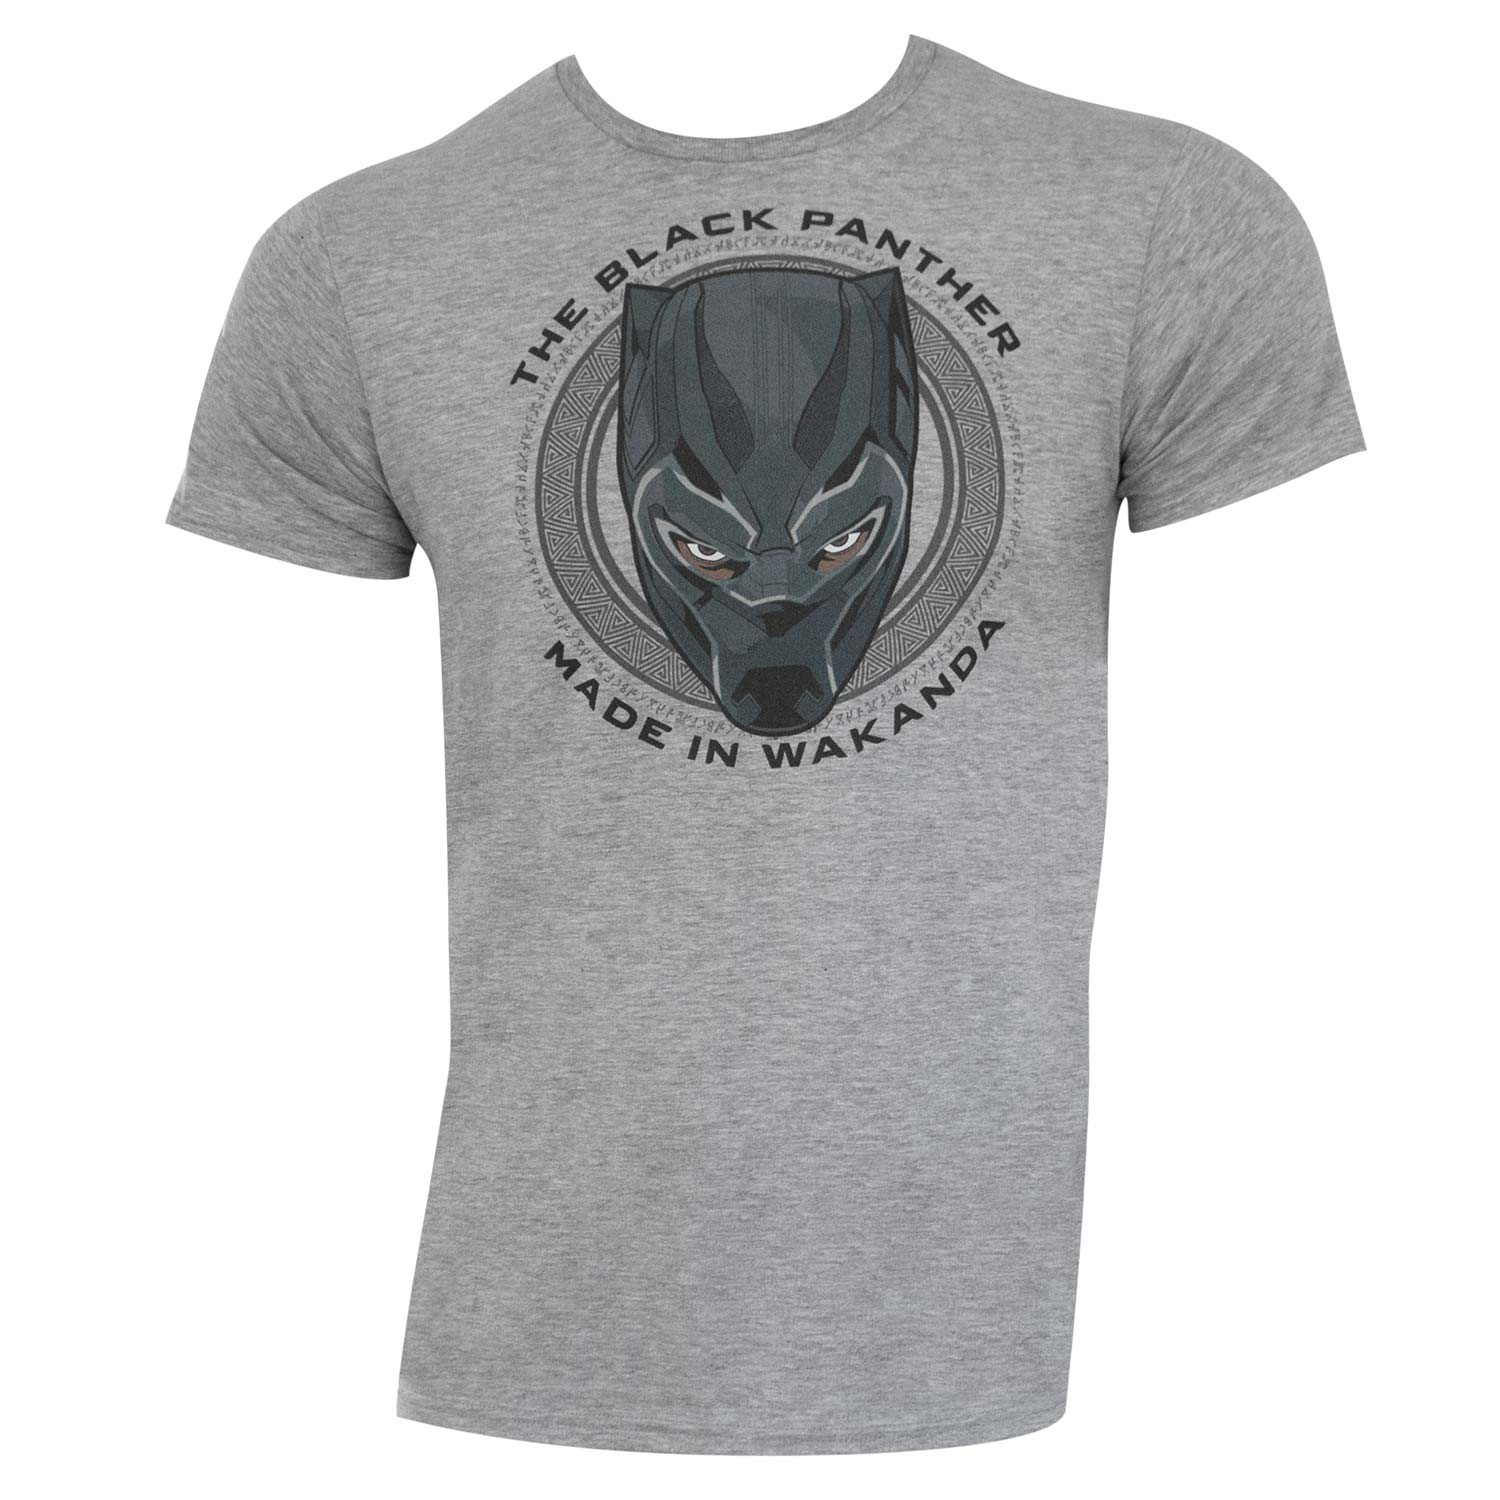 Black Panther Made In Wakanda Grey Tee Shirt